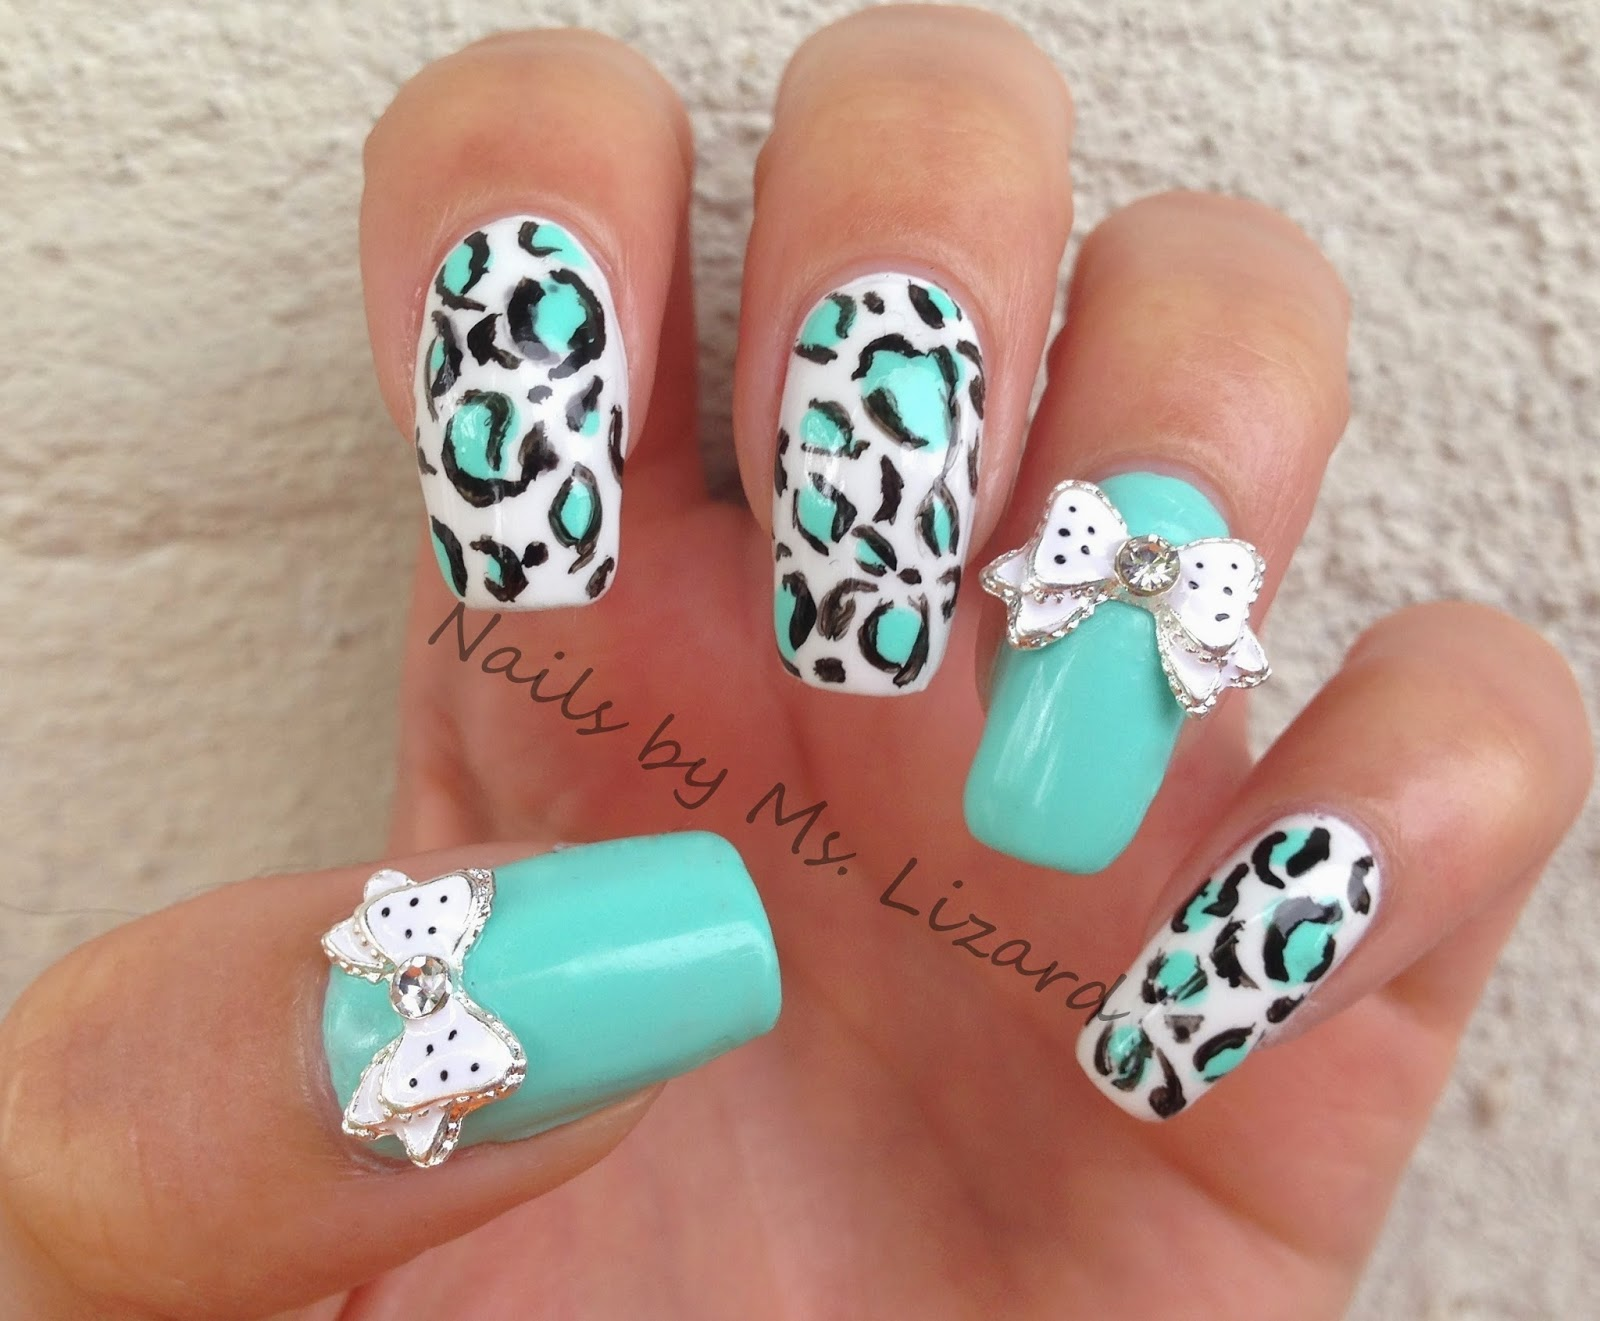 Nail Designs With Bows And Rhinestones | www.pixshark.com ...